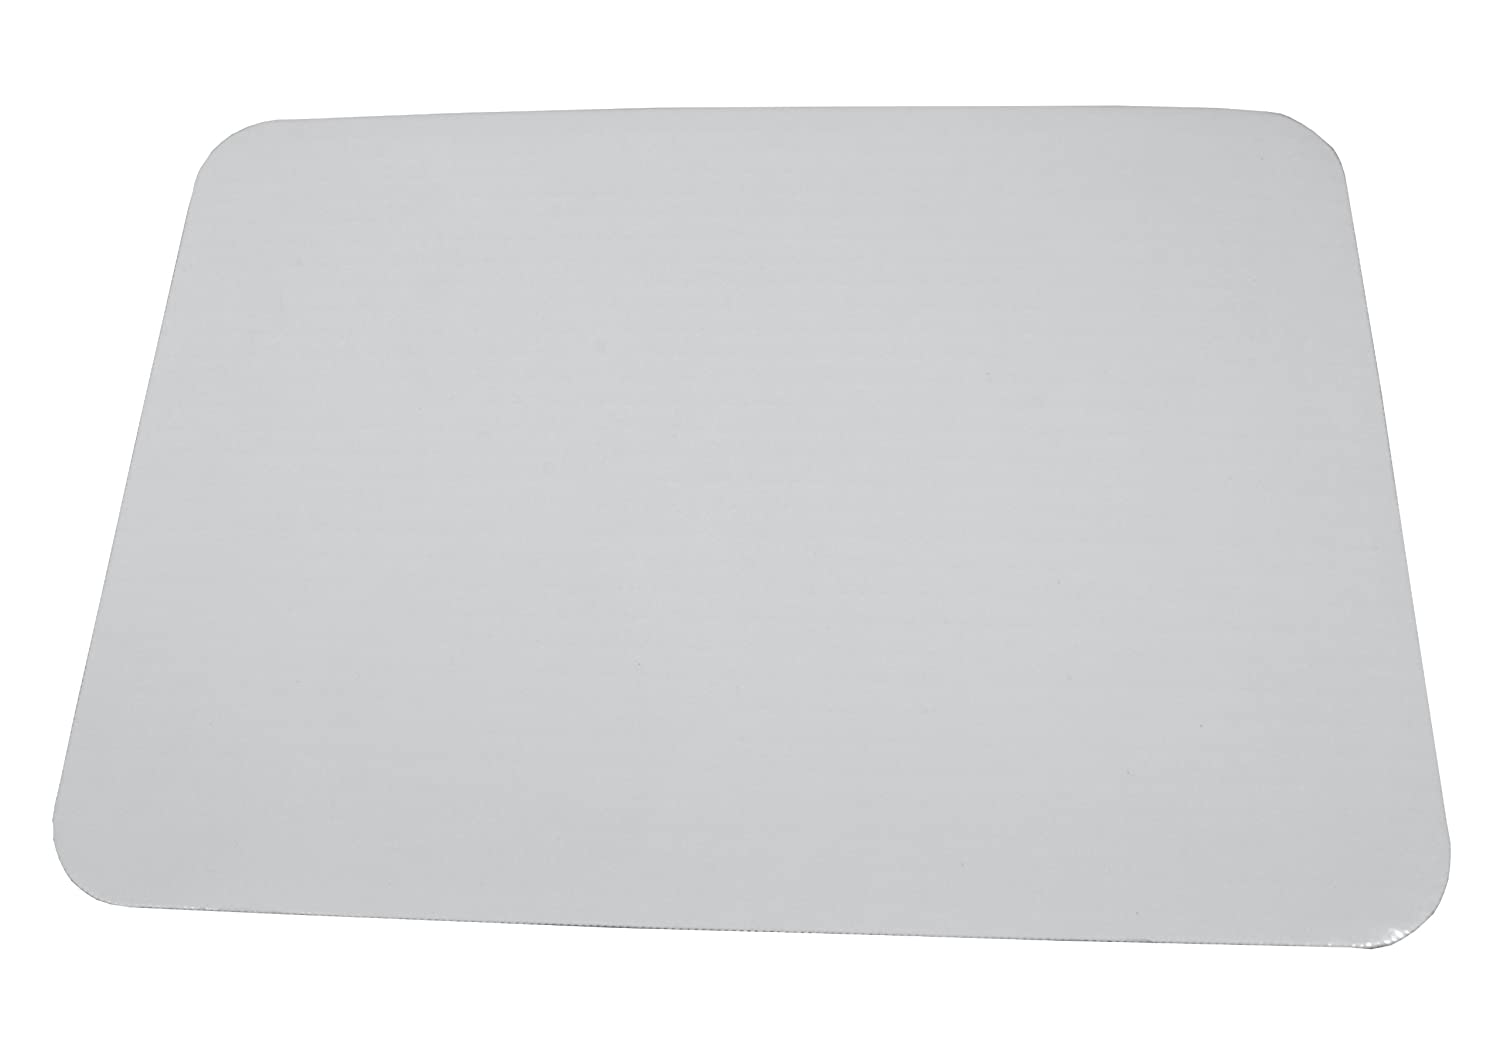 "B003LMK6IU Southern Champion Tray 1149 Corrugated Greaseproof Single Wall Cake Pad, Quarter Sheet, 14"" L x 10"" W Bright White (Case of 100) 71uYQ7-WrSL"